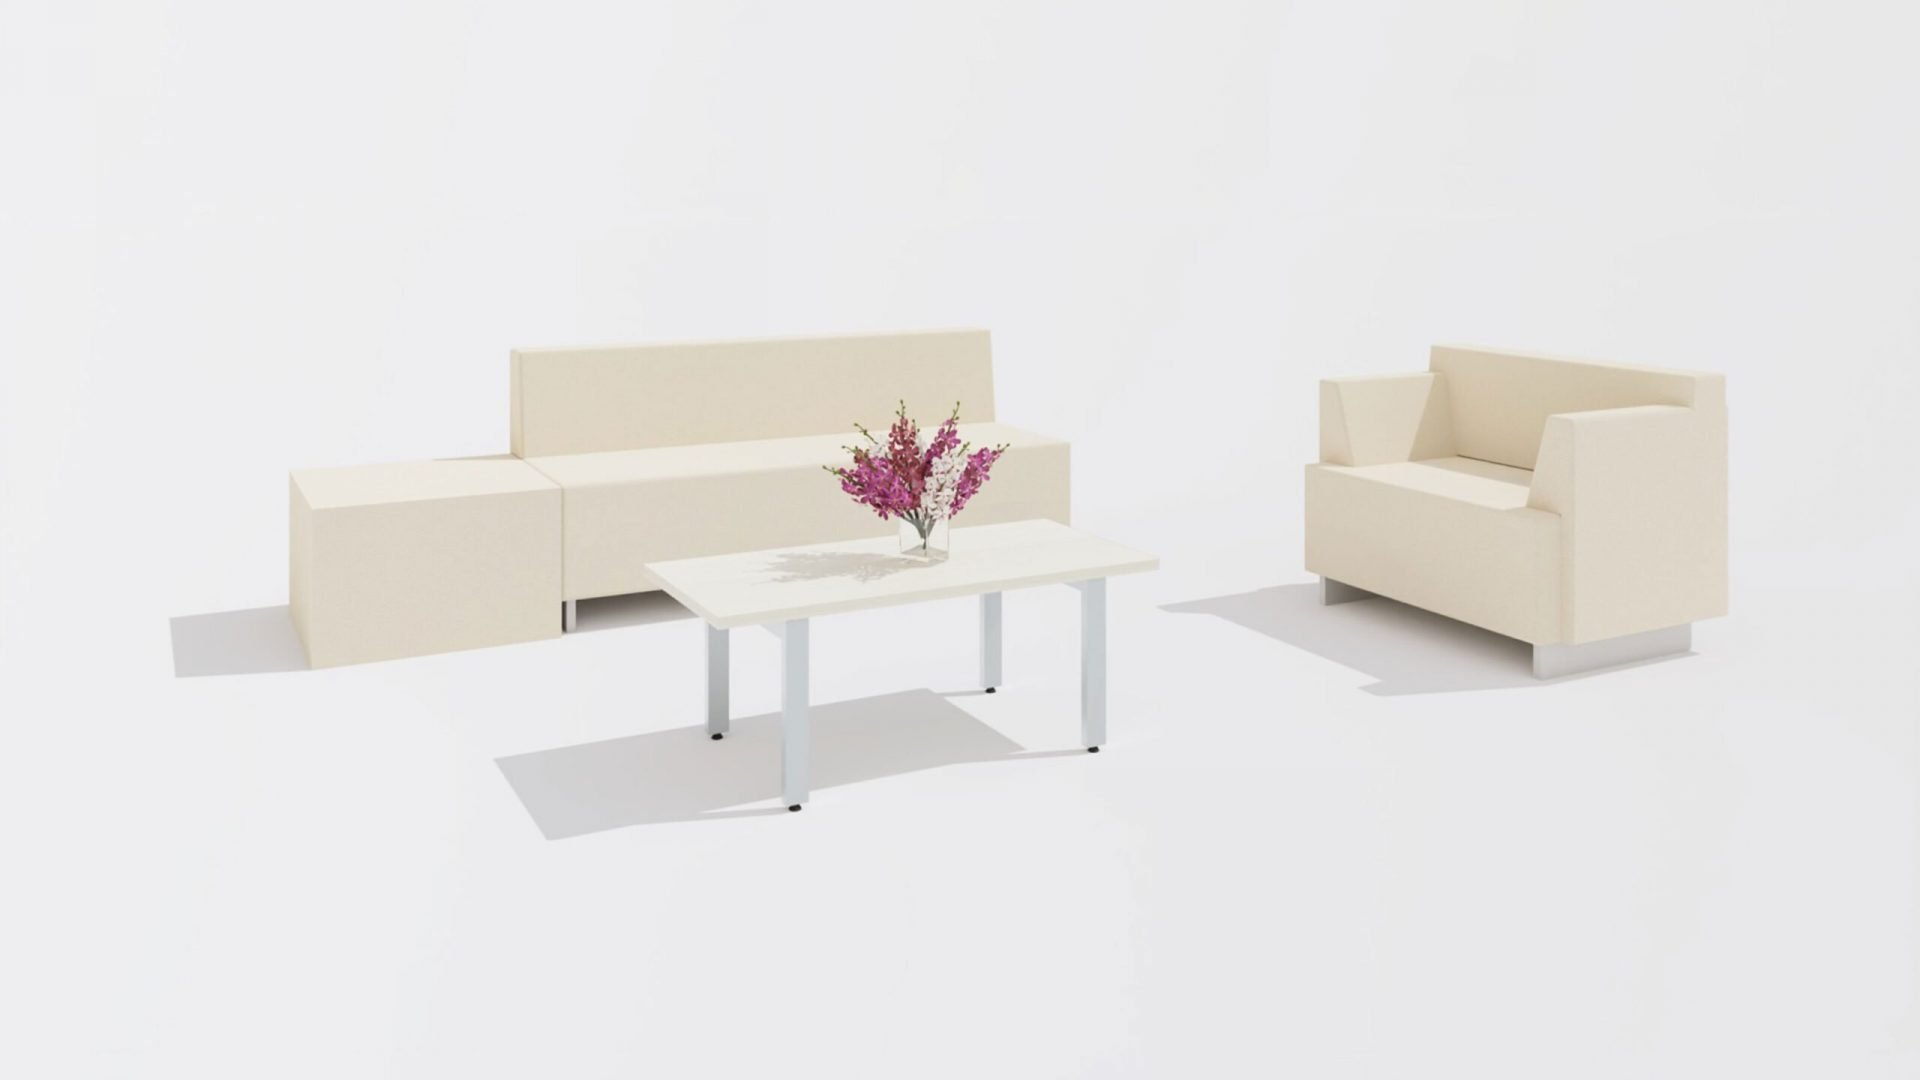 Rectangular Coffee Table 1659 with a Sofa and a Chair